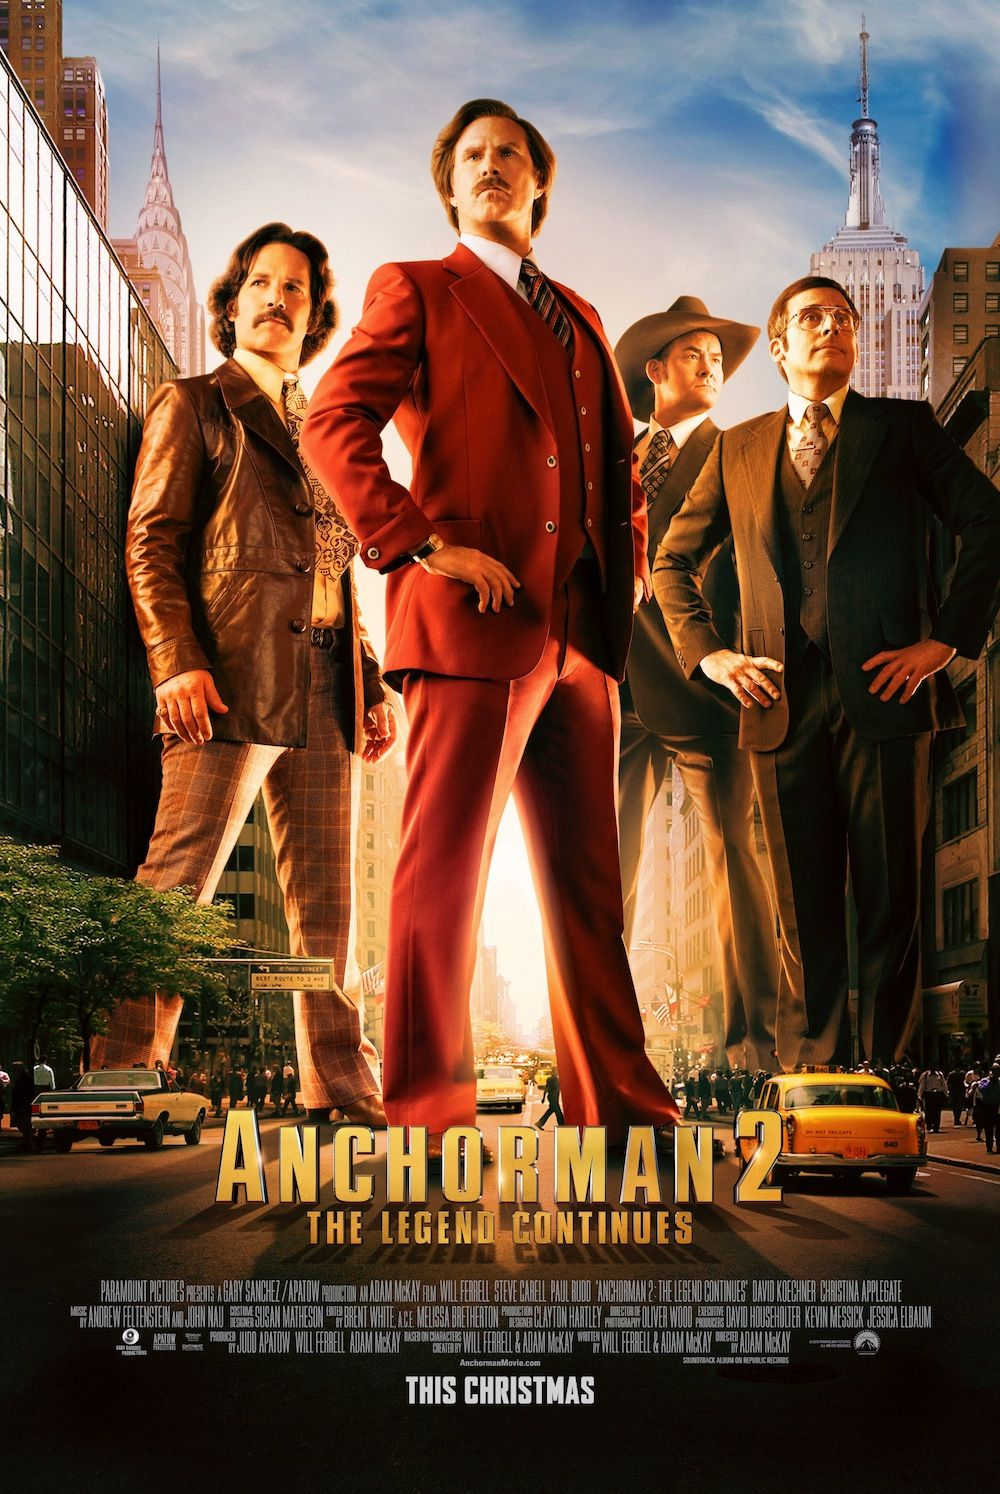 What The Anchorman 2 Campaign Can Teach Us About Social Media Marketing Anchorman Anchorman 2 Anchorman 2 The Legend Continues